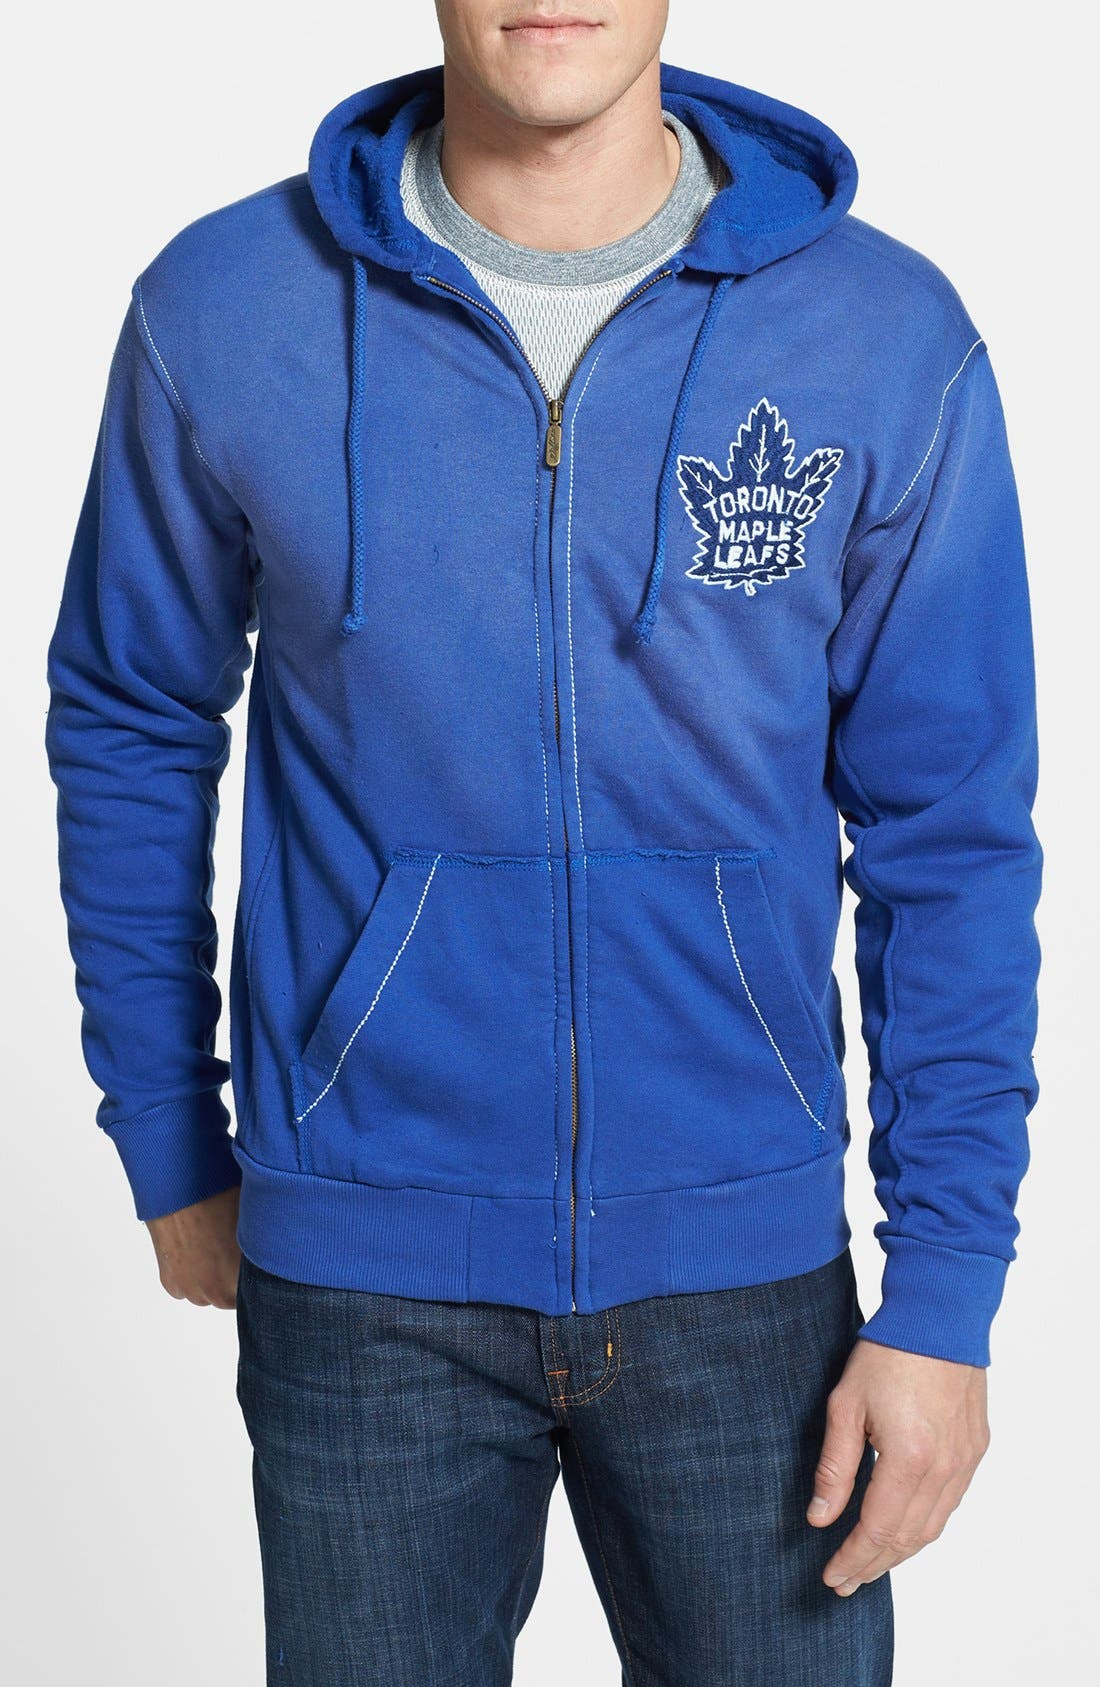 Main Image - Red Jacket 'Toronto Maple Leafs - Buzz' Hoodie